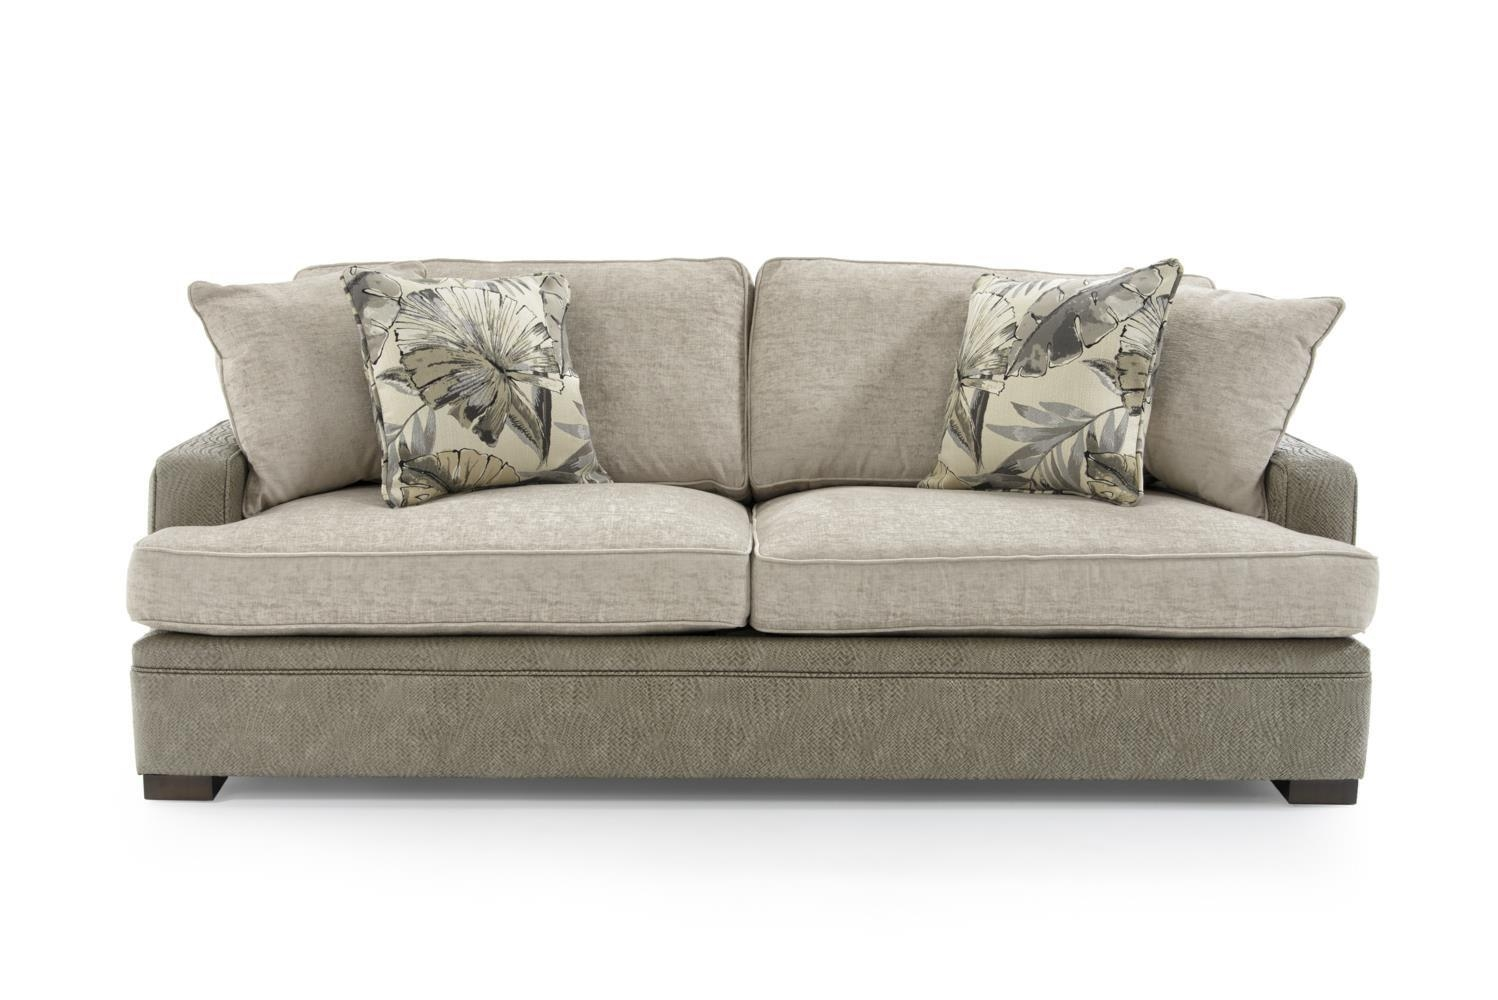 Braxton Culler Westchester Casual Track Arm Sofa – Baer's Intended For Braxton Culler Sofas (View 9 of 20)